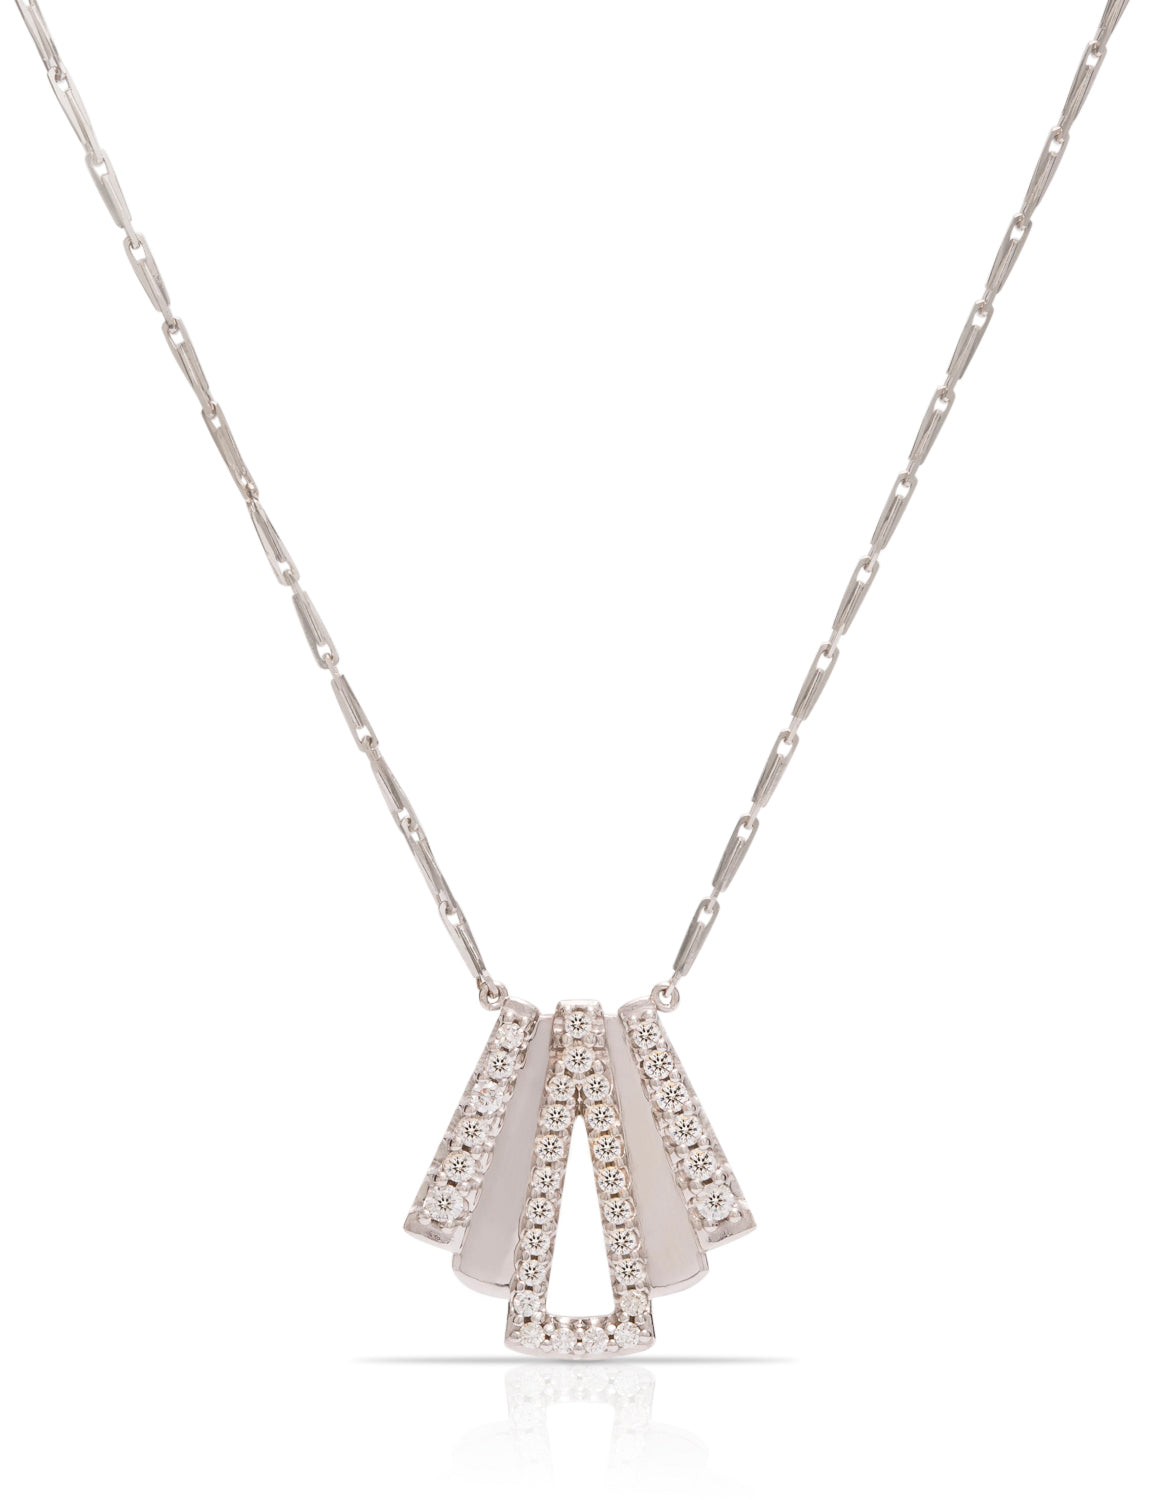 18K White Gold 34 Diamond Layered Necklace